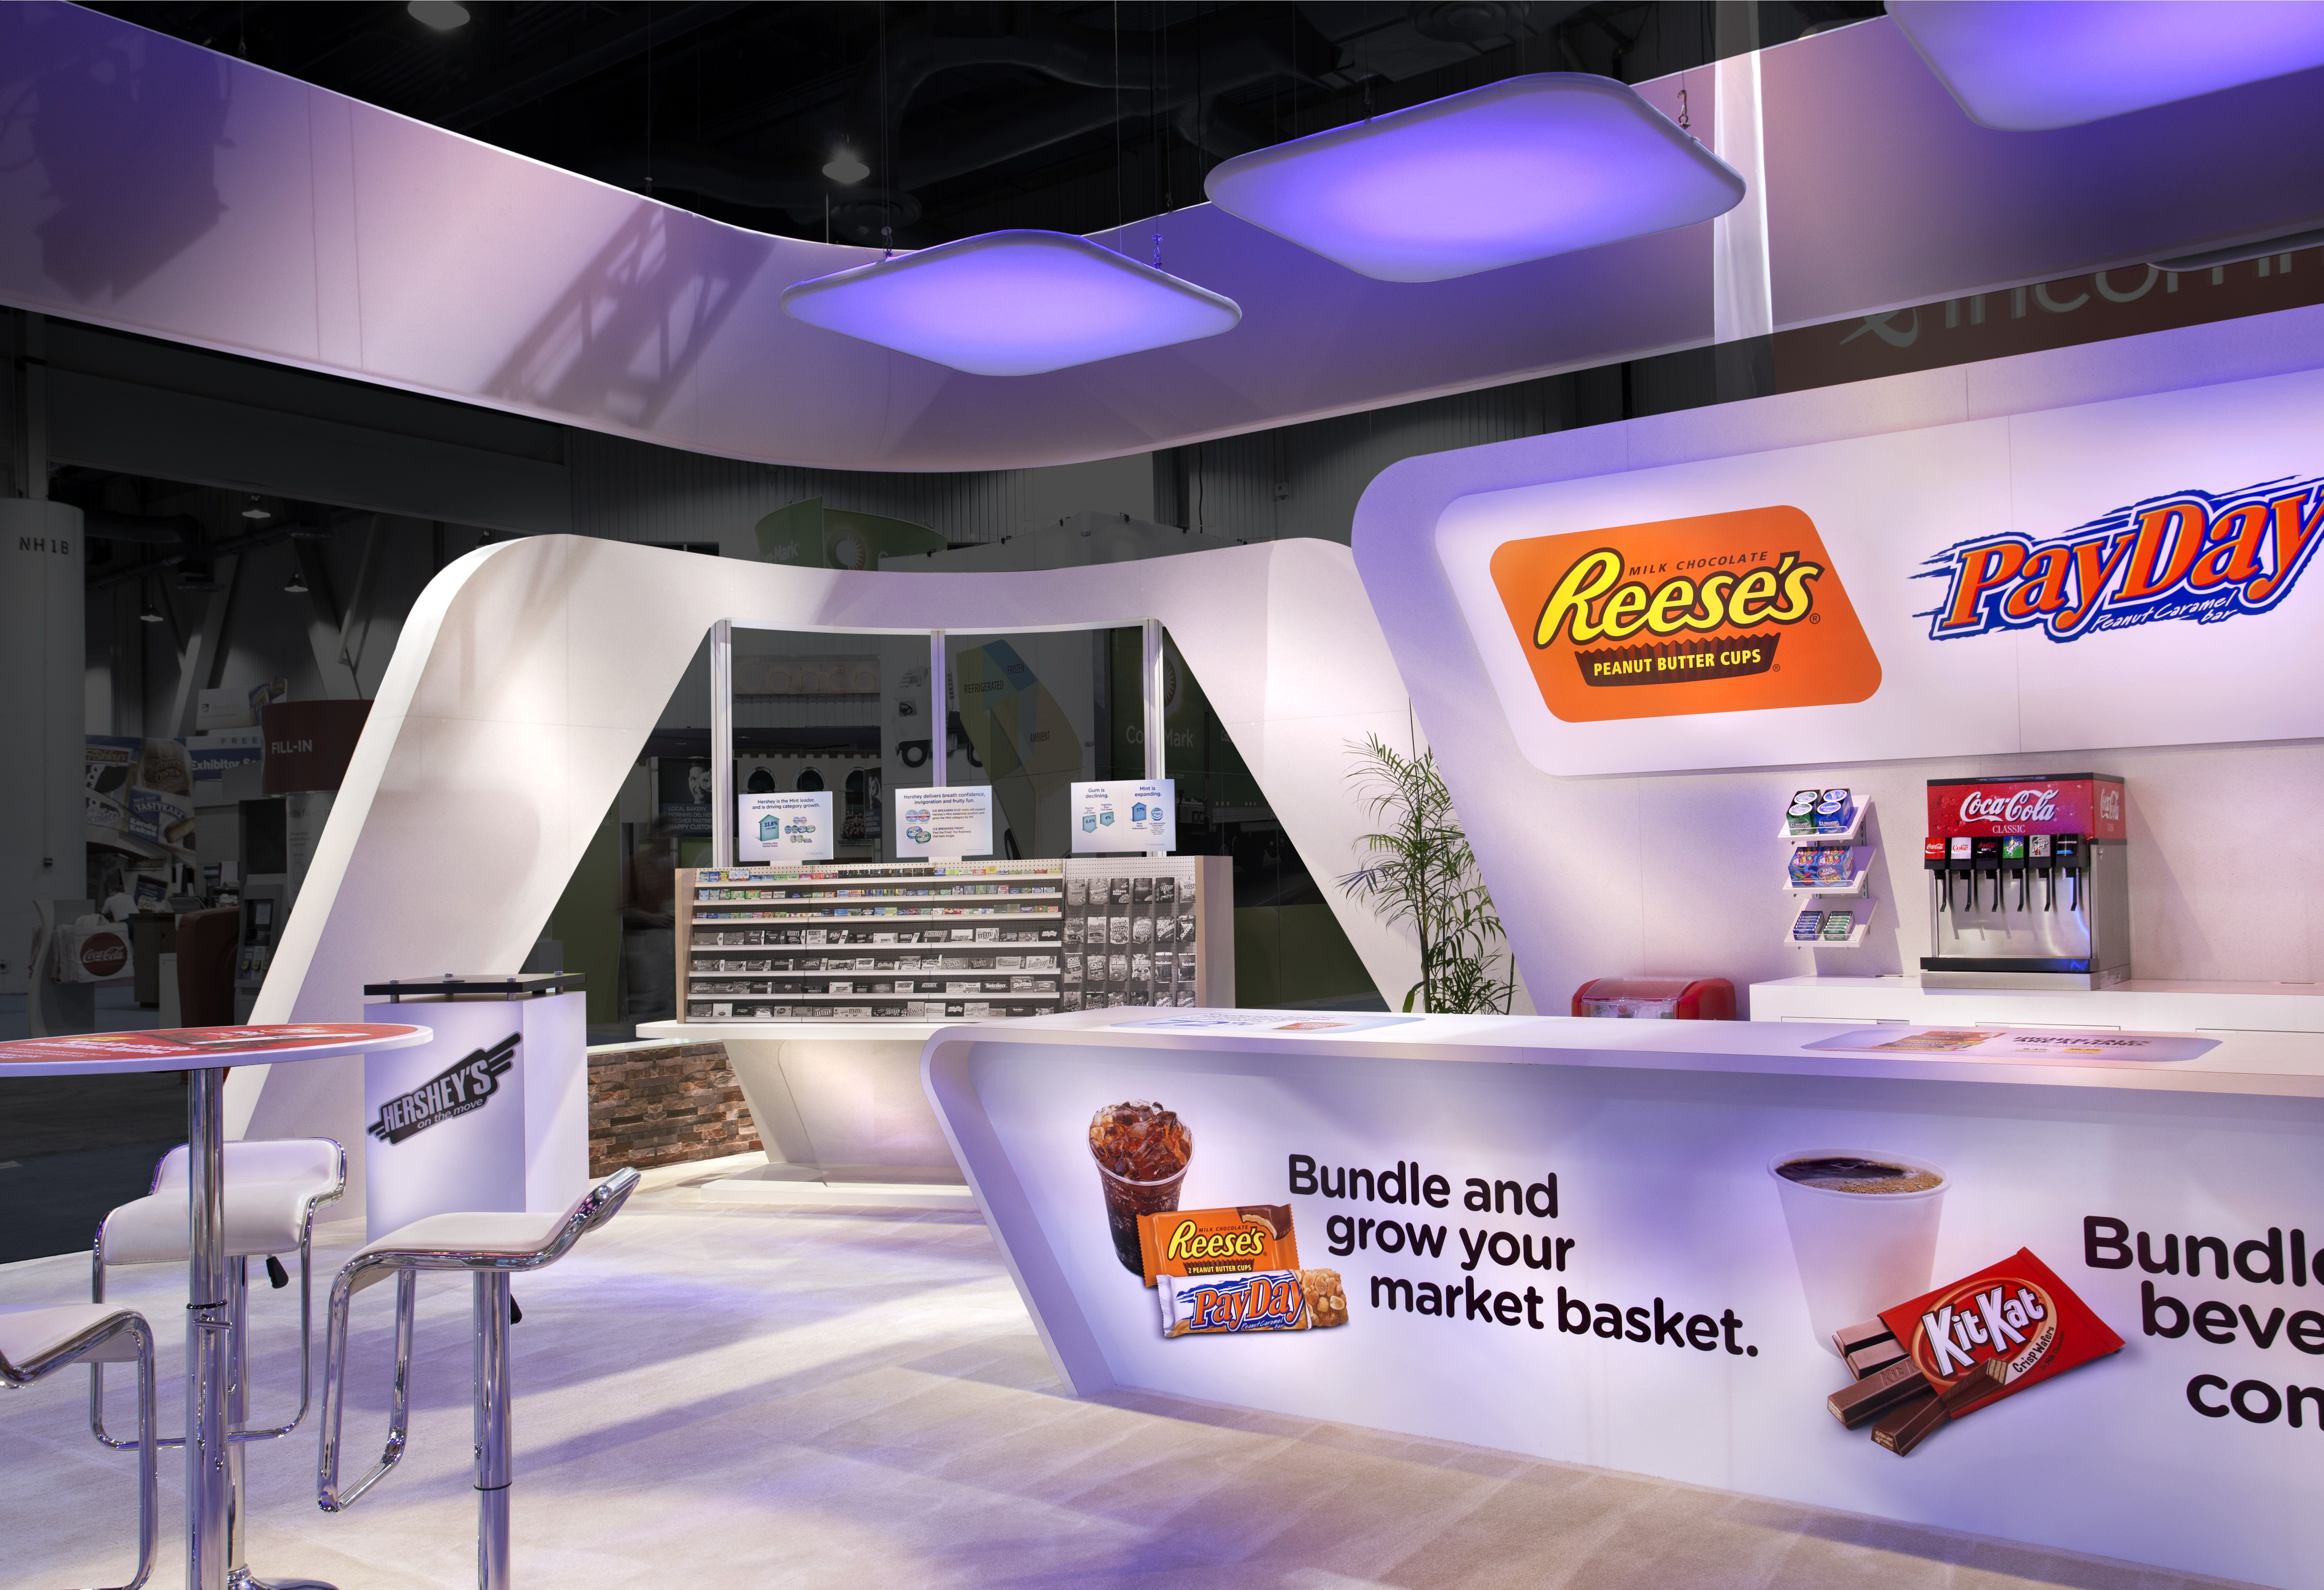 Hershey Favorites Reeses Kitkat And Payday Goodies All Available For Sampling Booth Design Exhibition Design Exhibition Stand Showroom showcase eye candy